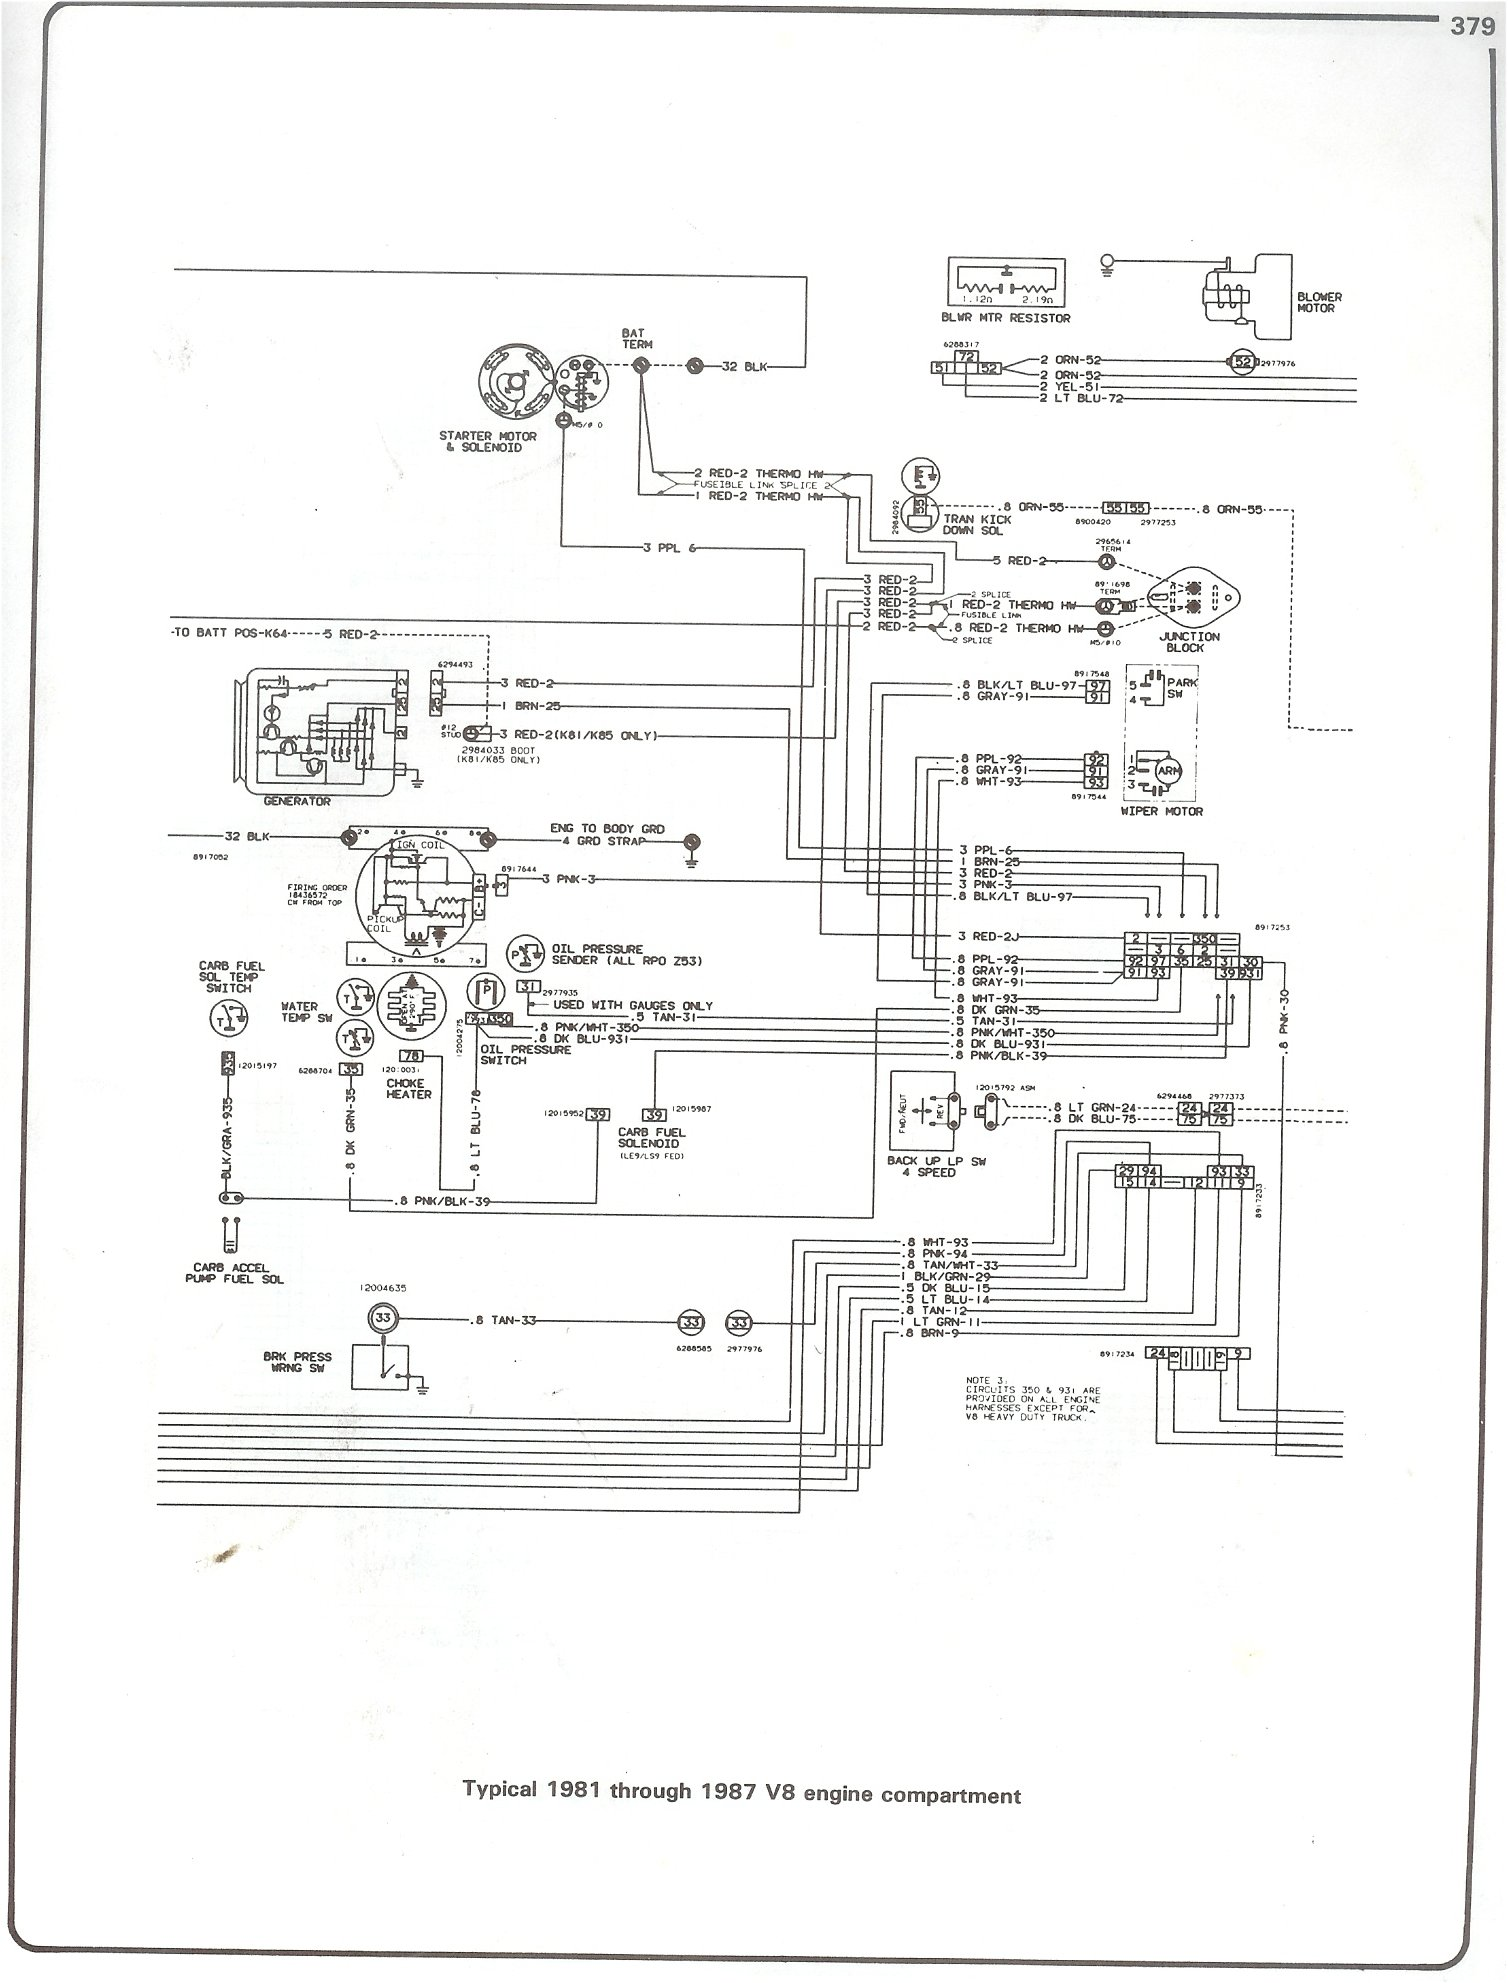 79 Chevy Truck Wiring Diagram Just Another Blog 2004 Volvo 240 Ke Complete 73 87 Diagrams Rh Forum 87chevytrucks Com 1979 Radio